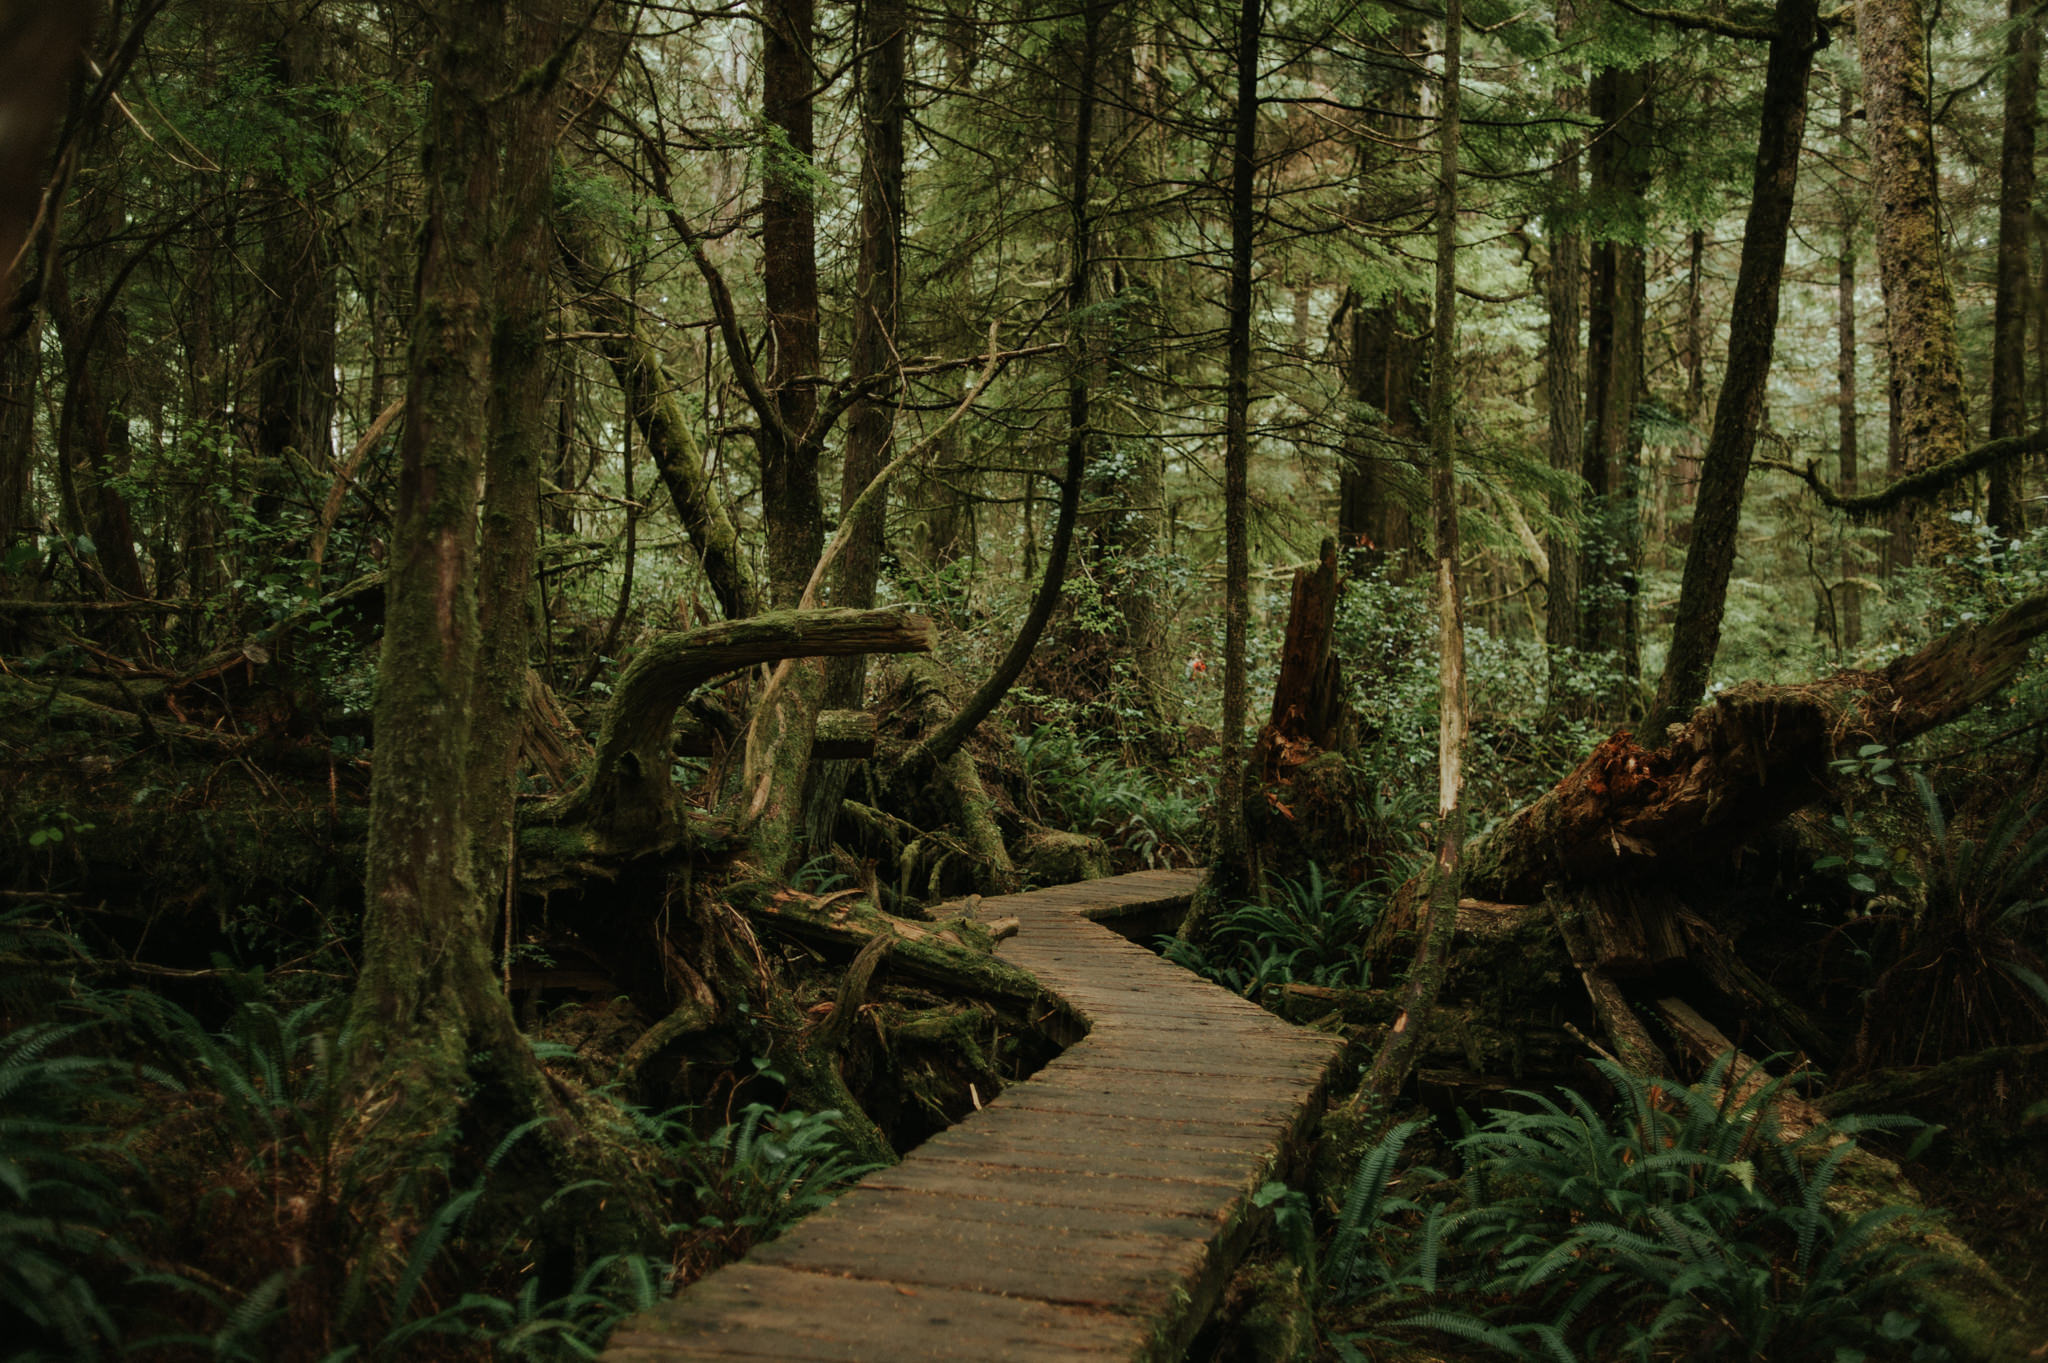 Hiking in Tofino. Rainforest Trail hike in Pacific Rim National Park // Daring Wanderer: www.daringwanderer.com